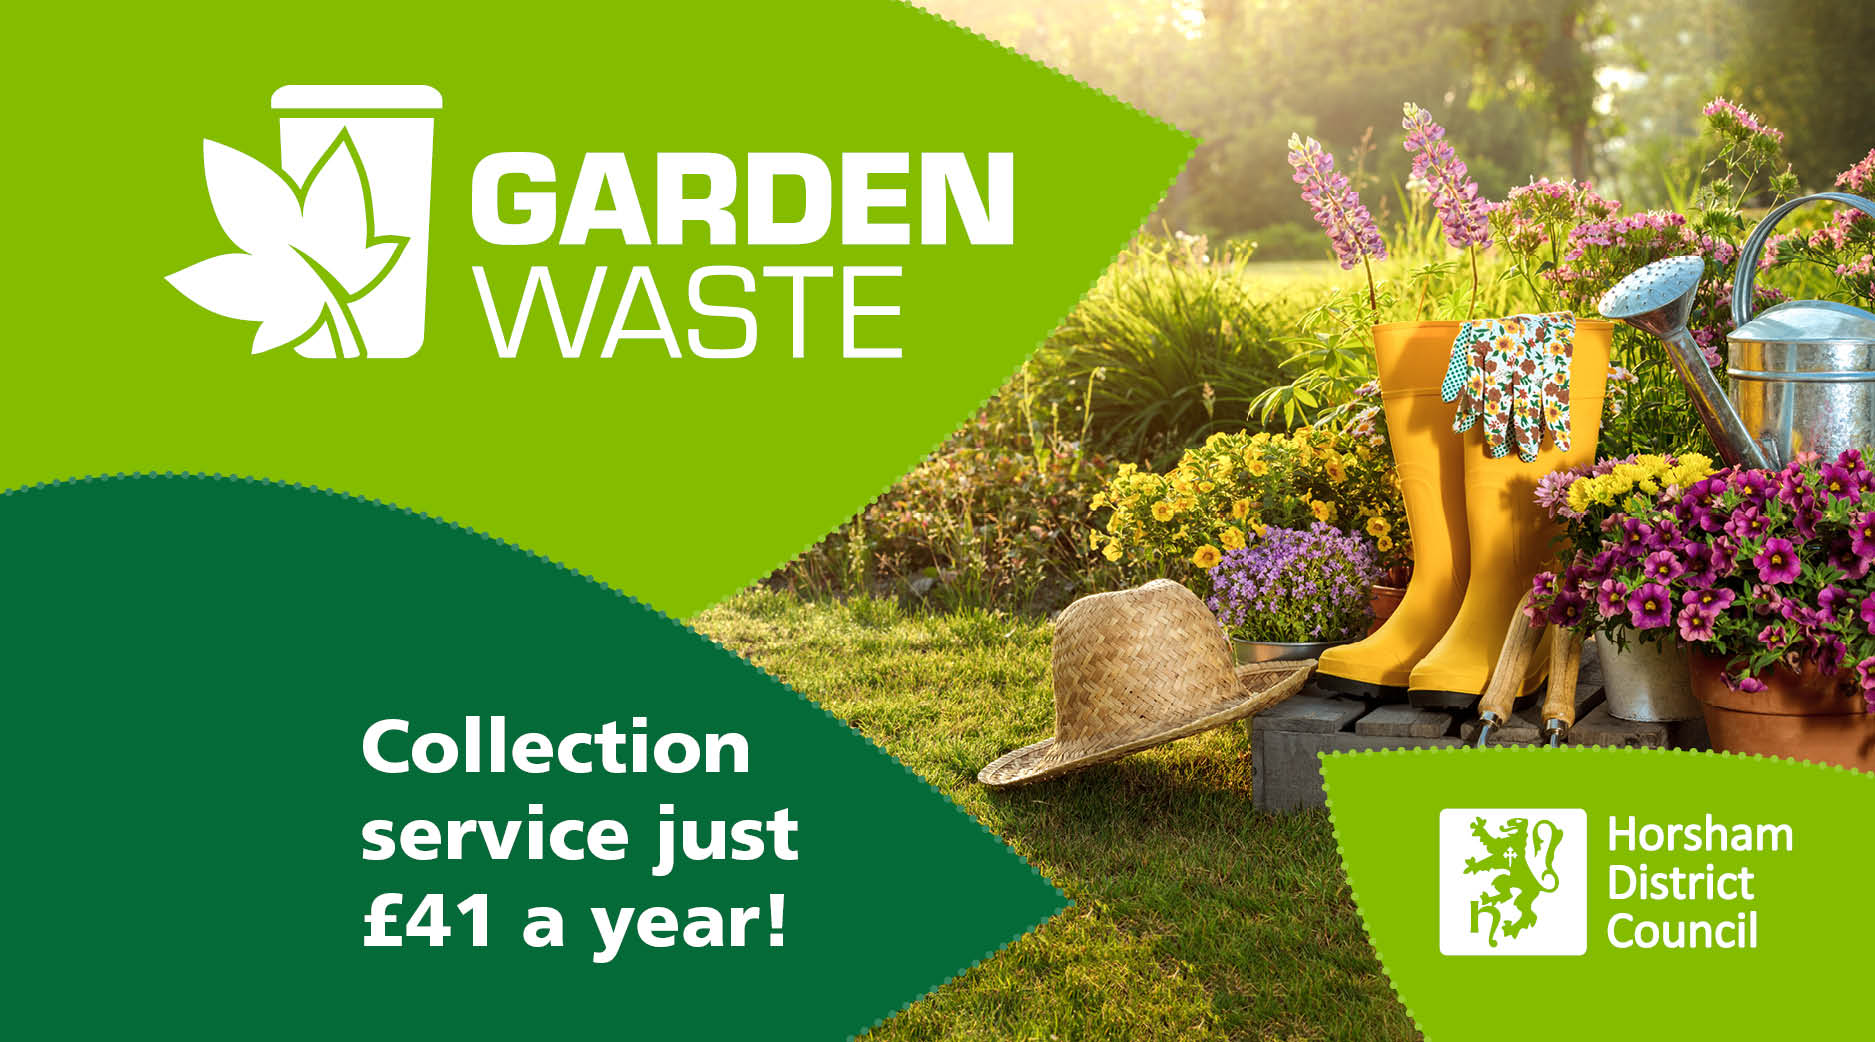 Sign up for the garden waste collection service for £41 a year